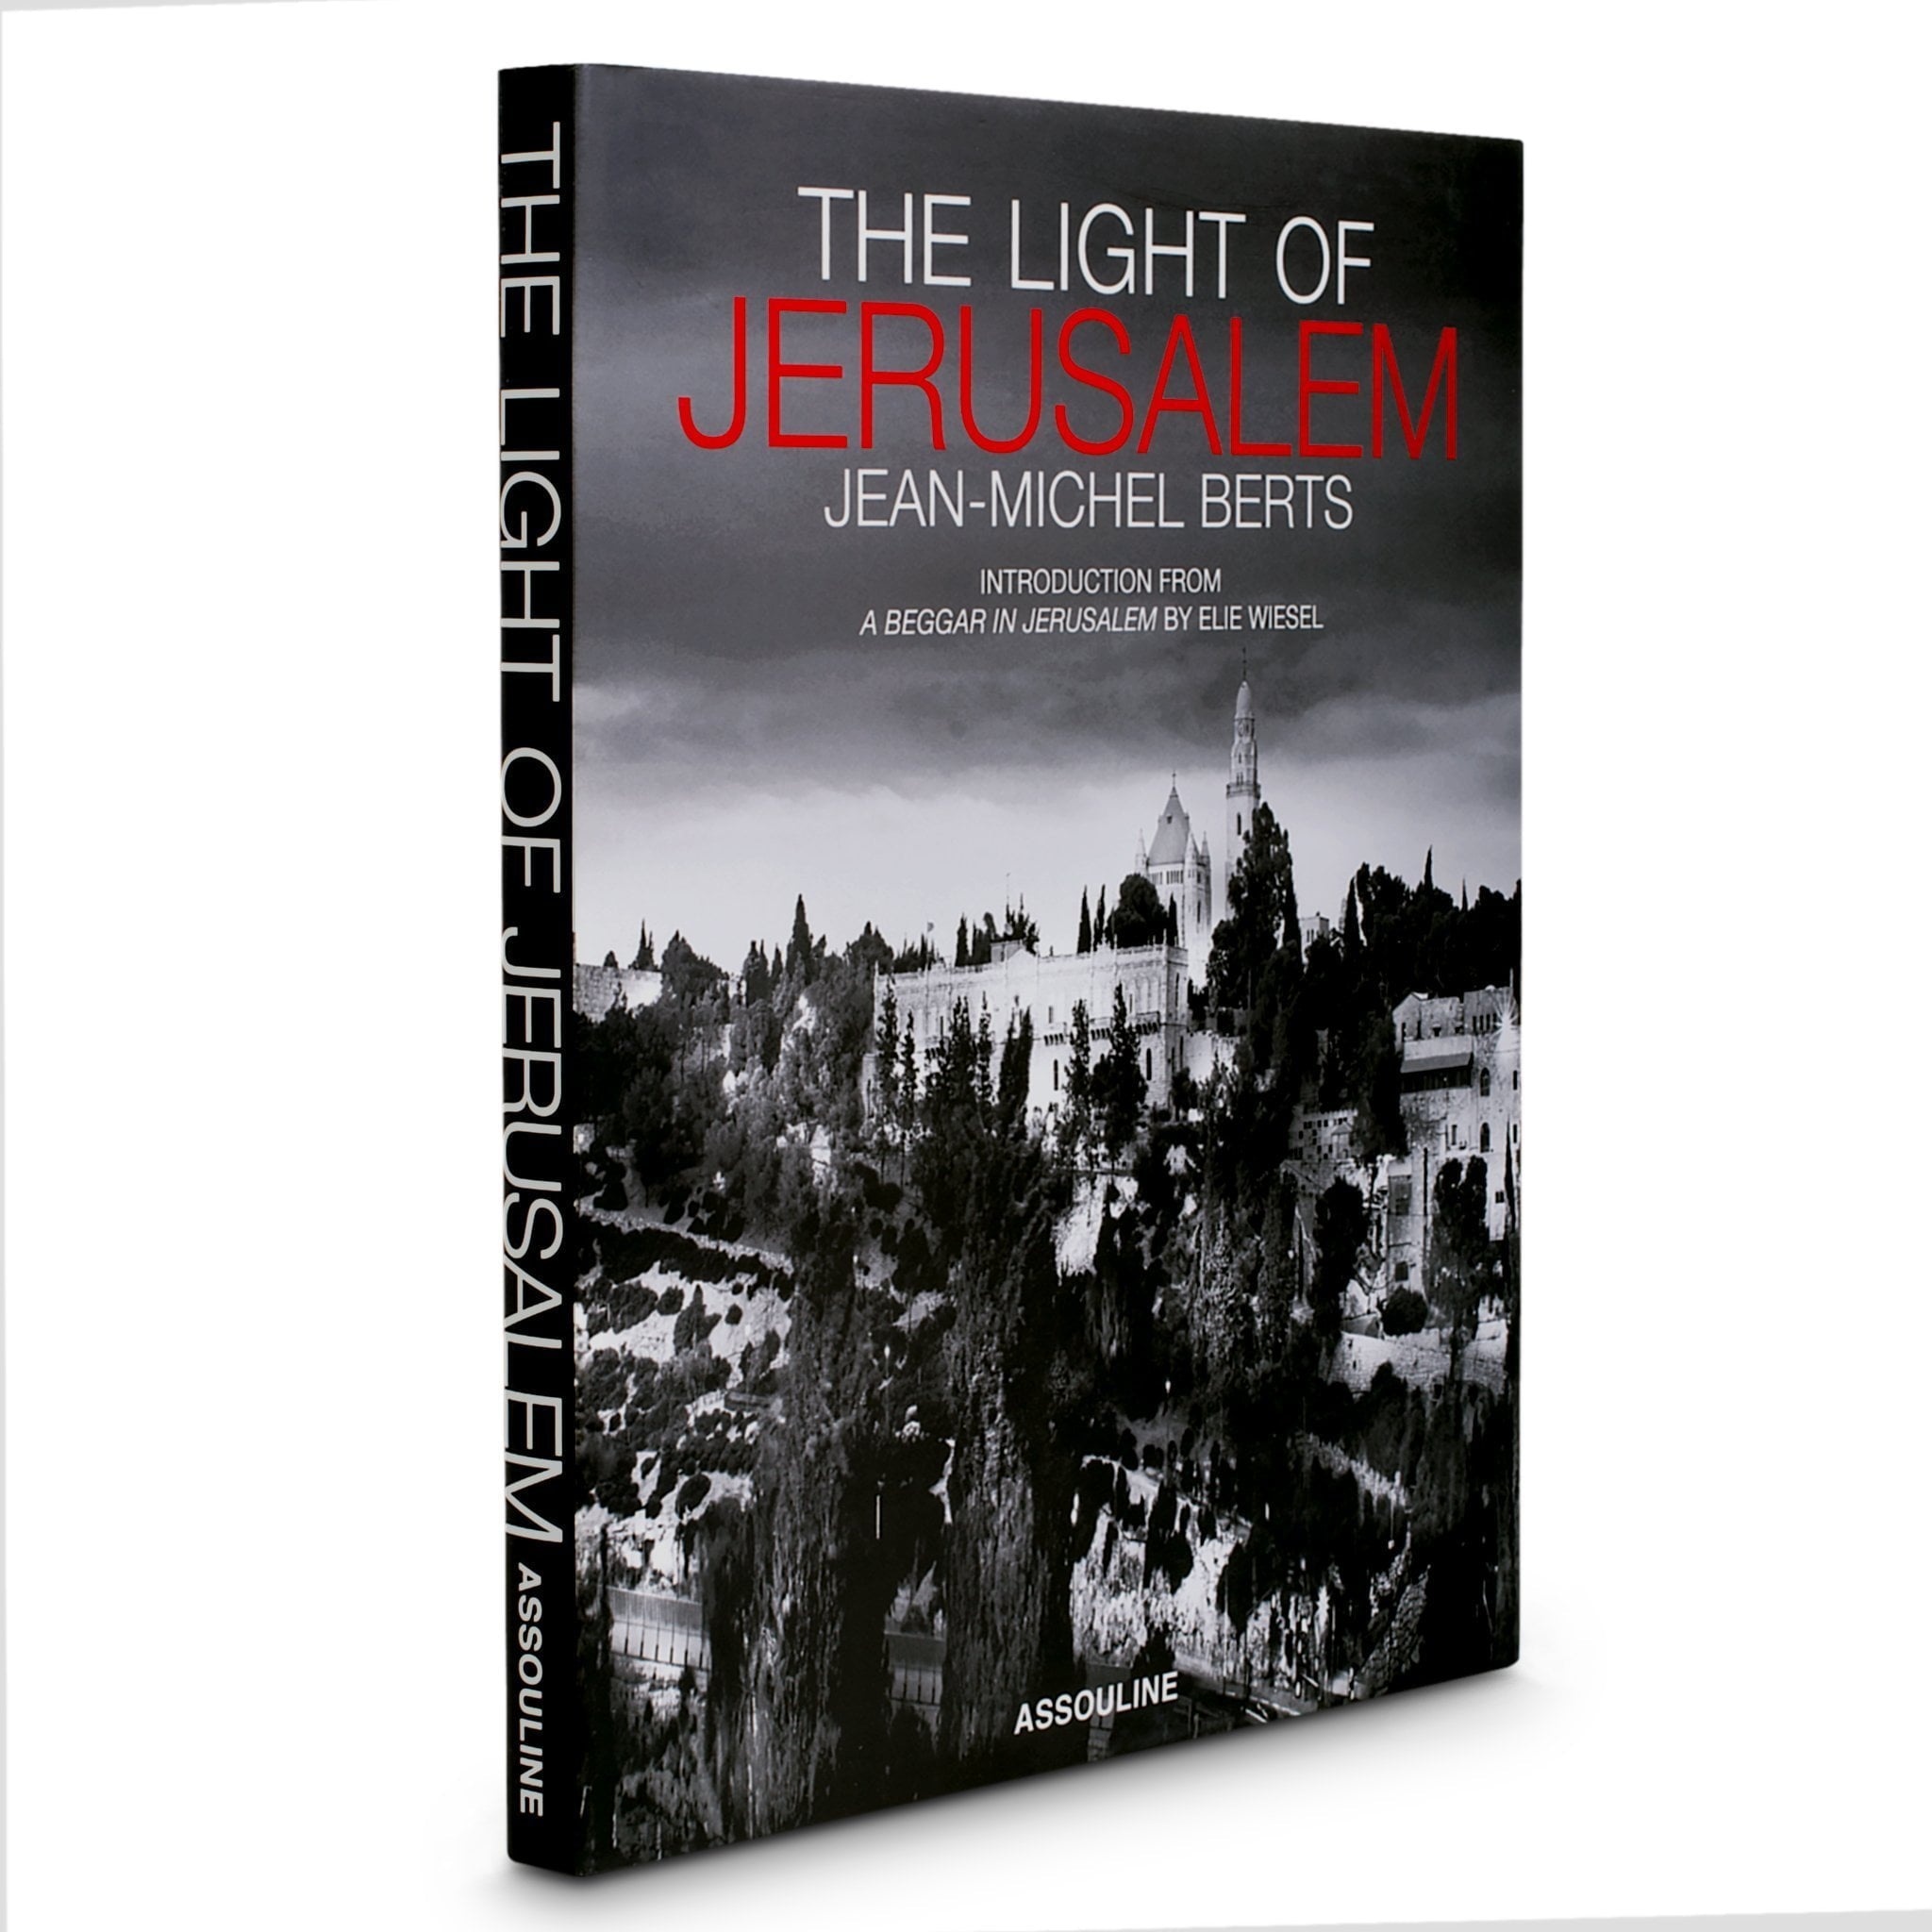 The Light of Jerusalem - Assouline